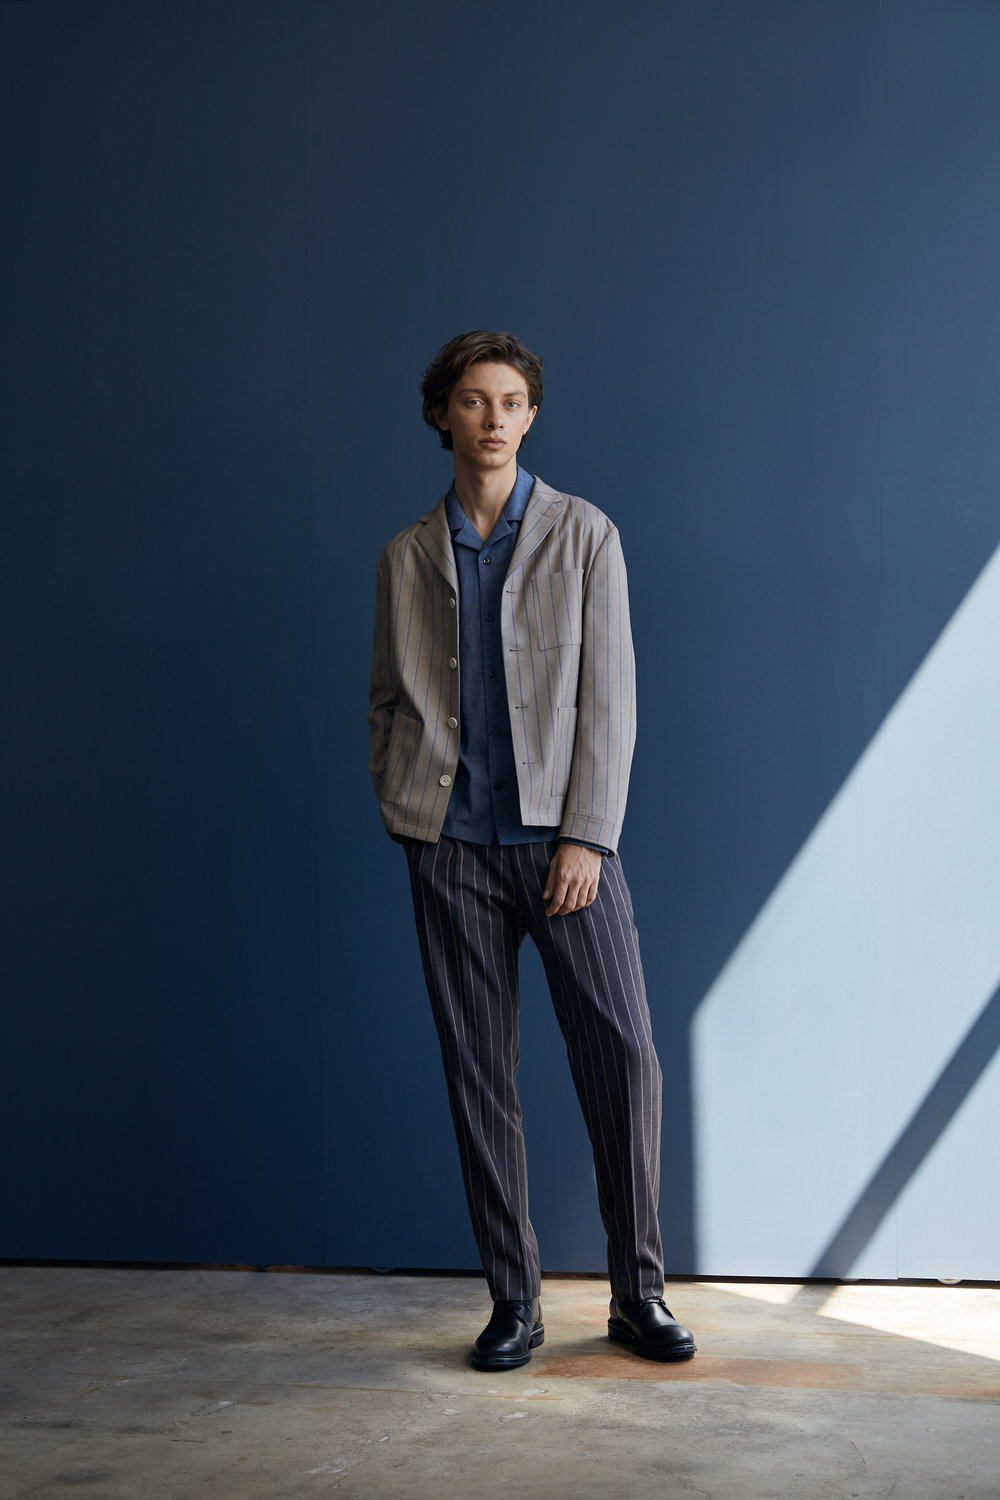 Strip Pyjamas Blazer,   Chambray Cuban Collar Shirt ,  Striped Pleat Pant  with Bootsy Collins Boots.